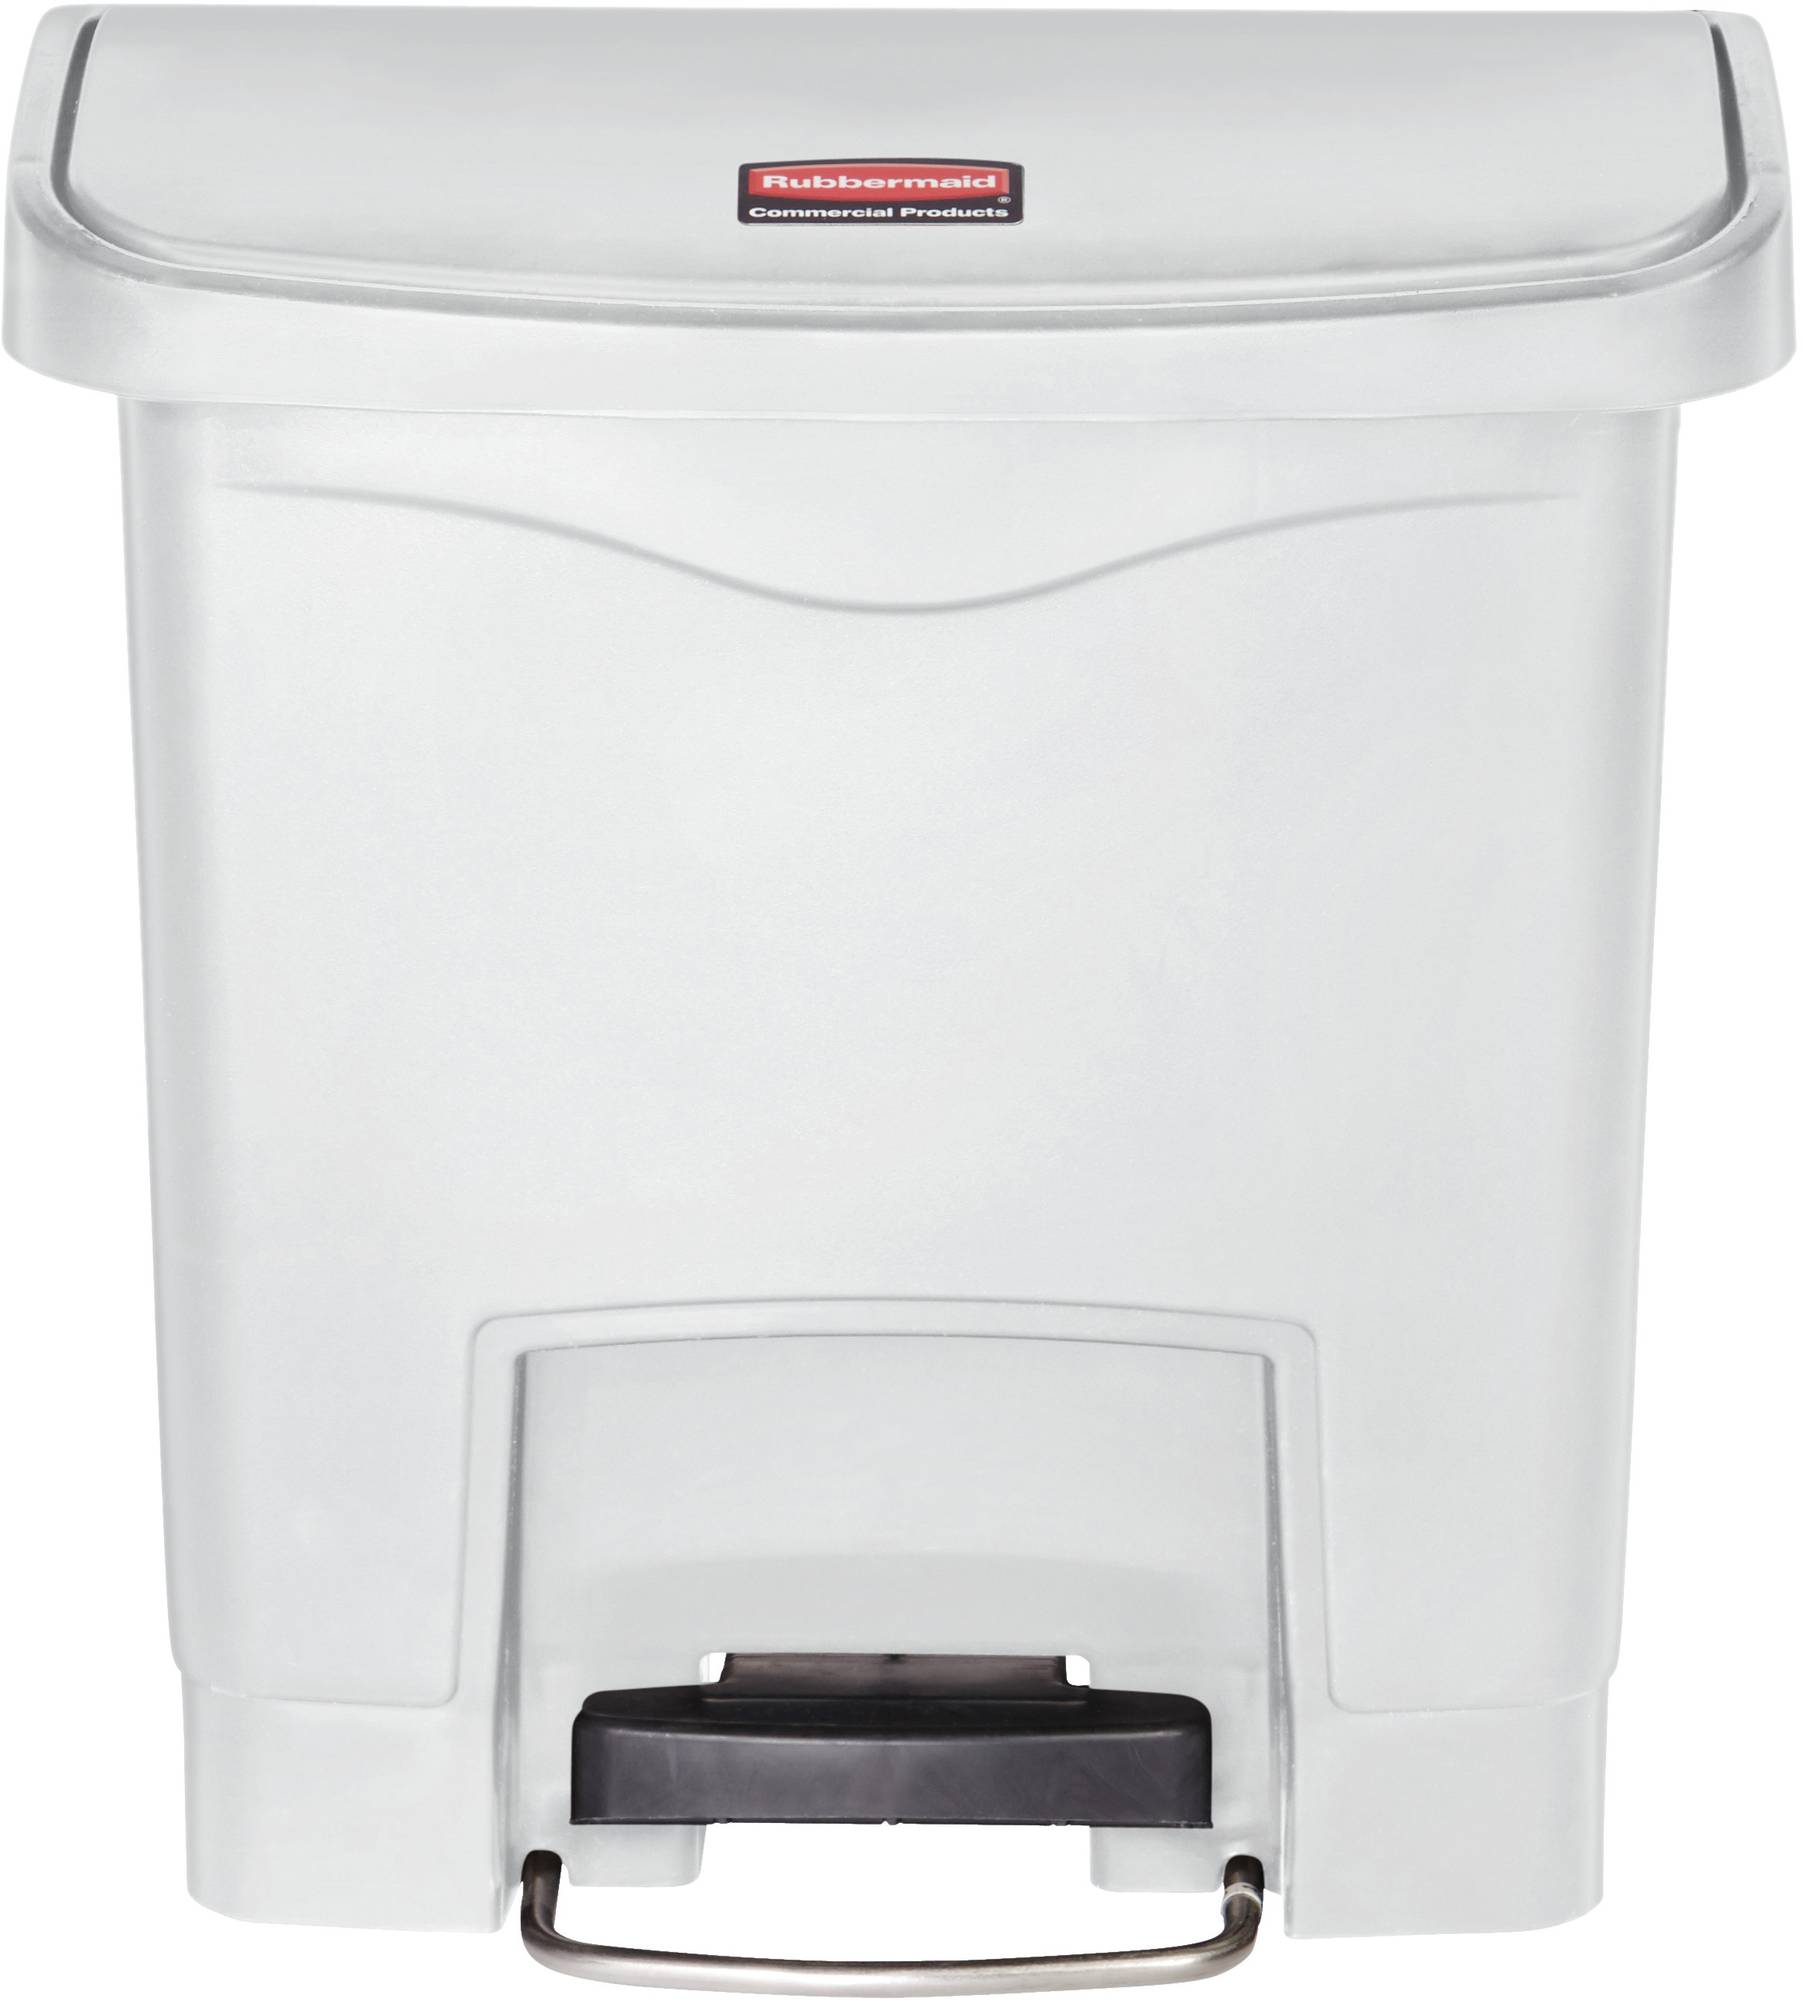 Rubbermaid Slim Jim Step On Container, Front Step mit 15 l Füllmenge in Weiß, breites Fußpedal